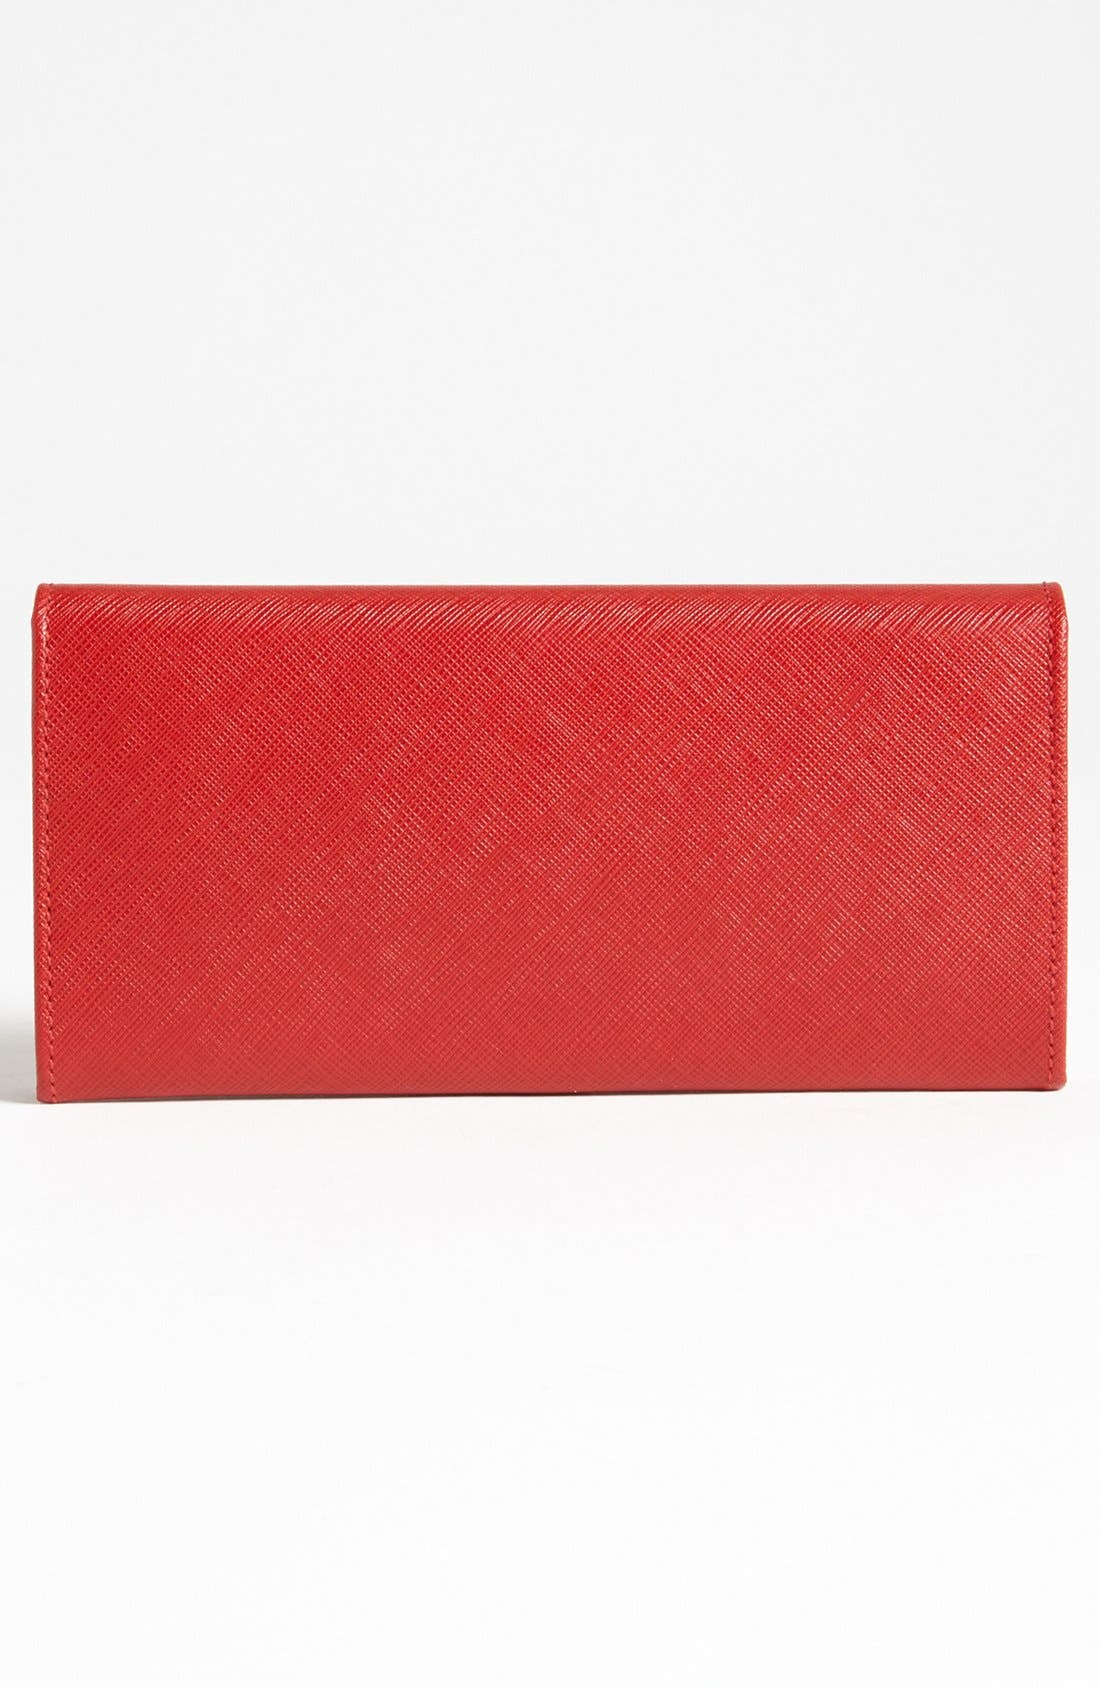 Saffiano Leather Wallet,                             Alternate thumbnail 3, color,                             600